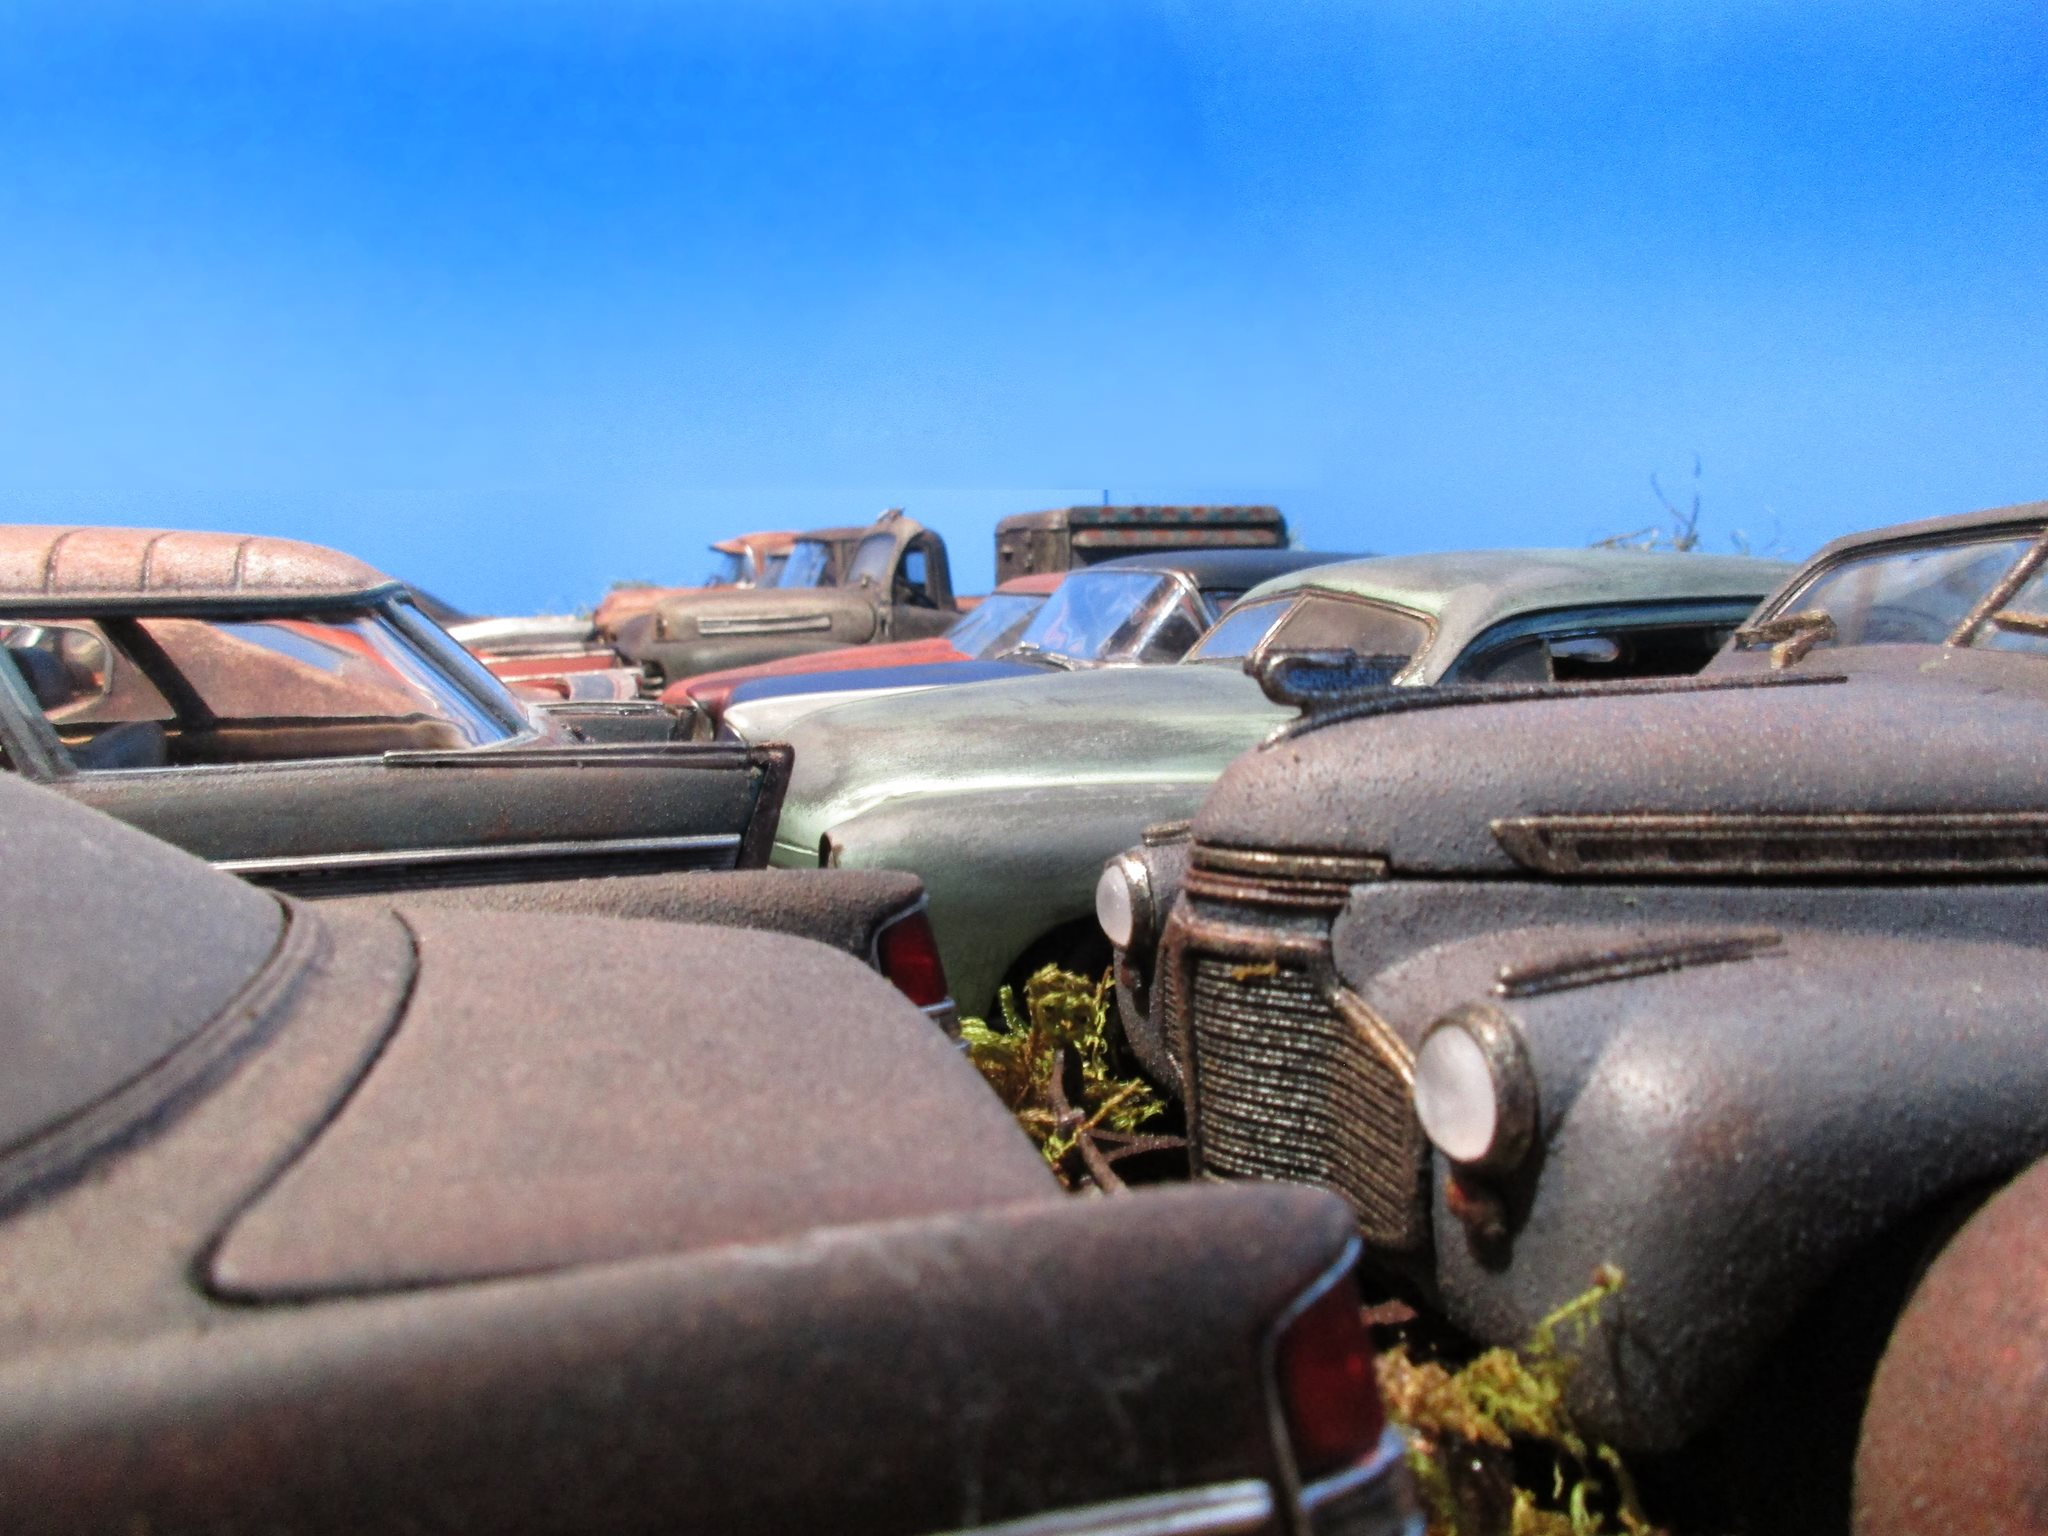 Toasted---Autos-Weathered-Die-Cast-Cars-6